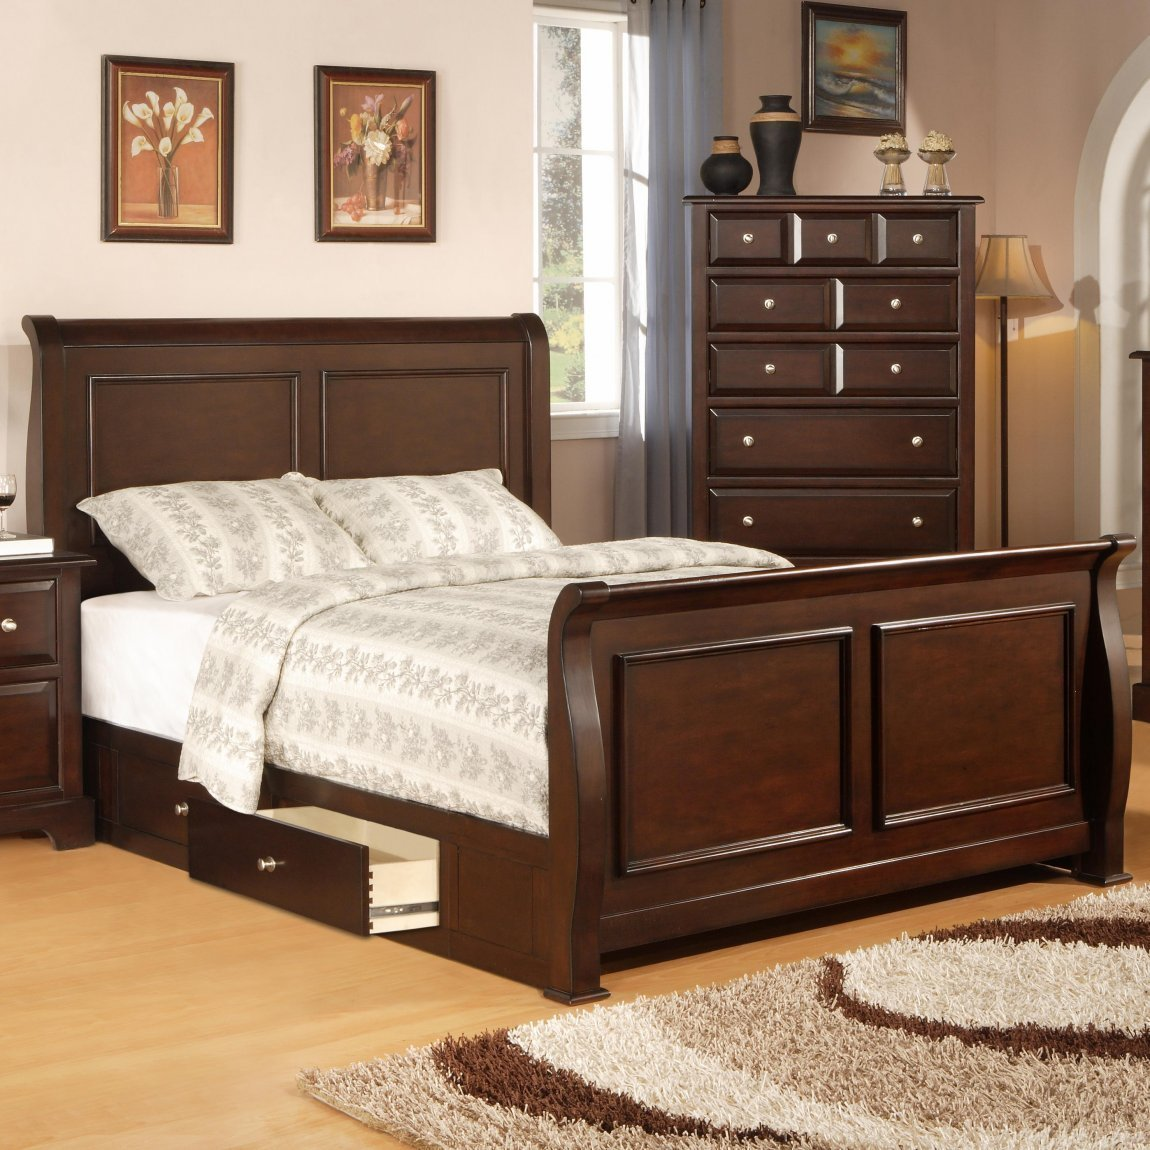 Best Wayne Marigold Princess Image Teenage Bedroom Ideas For With Pictures